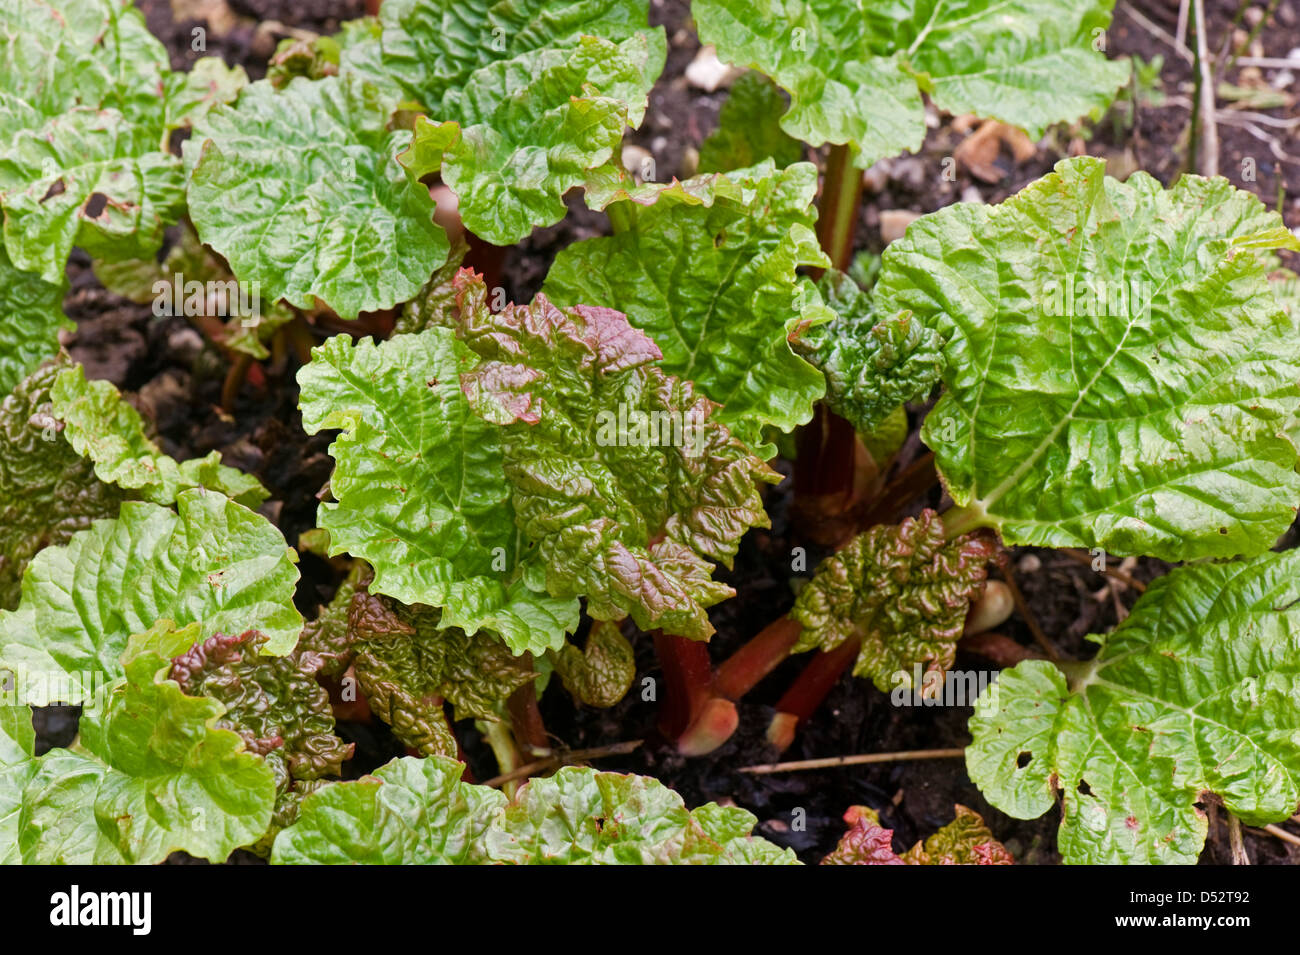 Young rhubarb shoots in late winter as plant emerges from dormancy - Stock Image